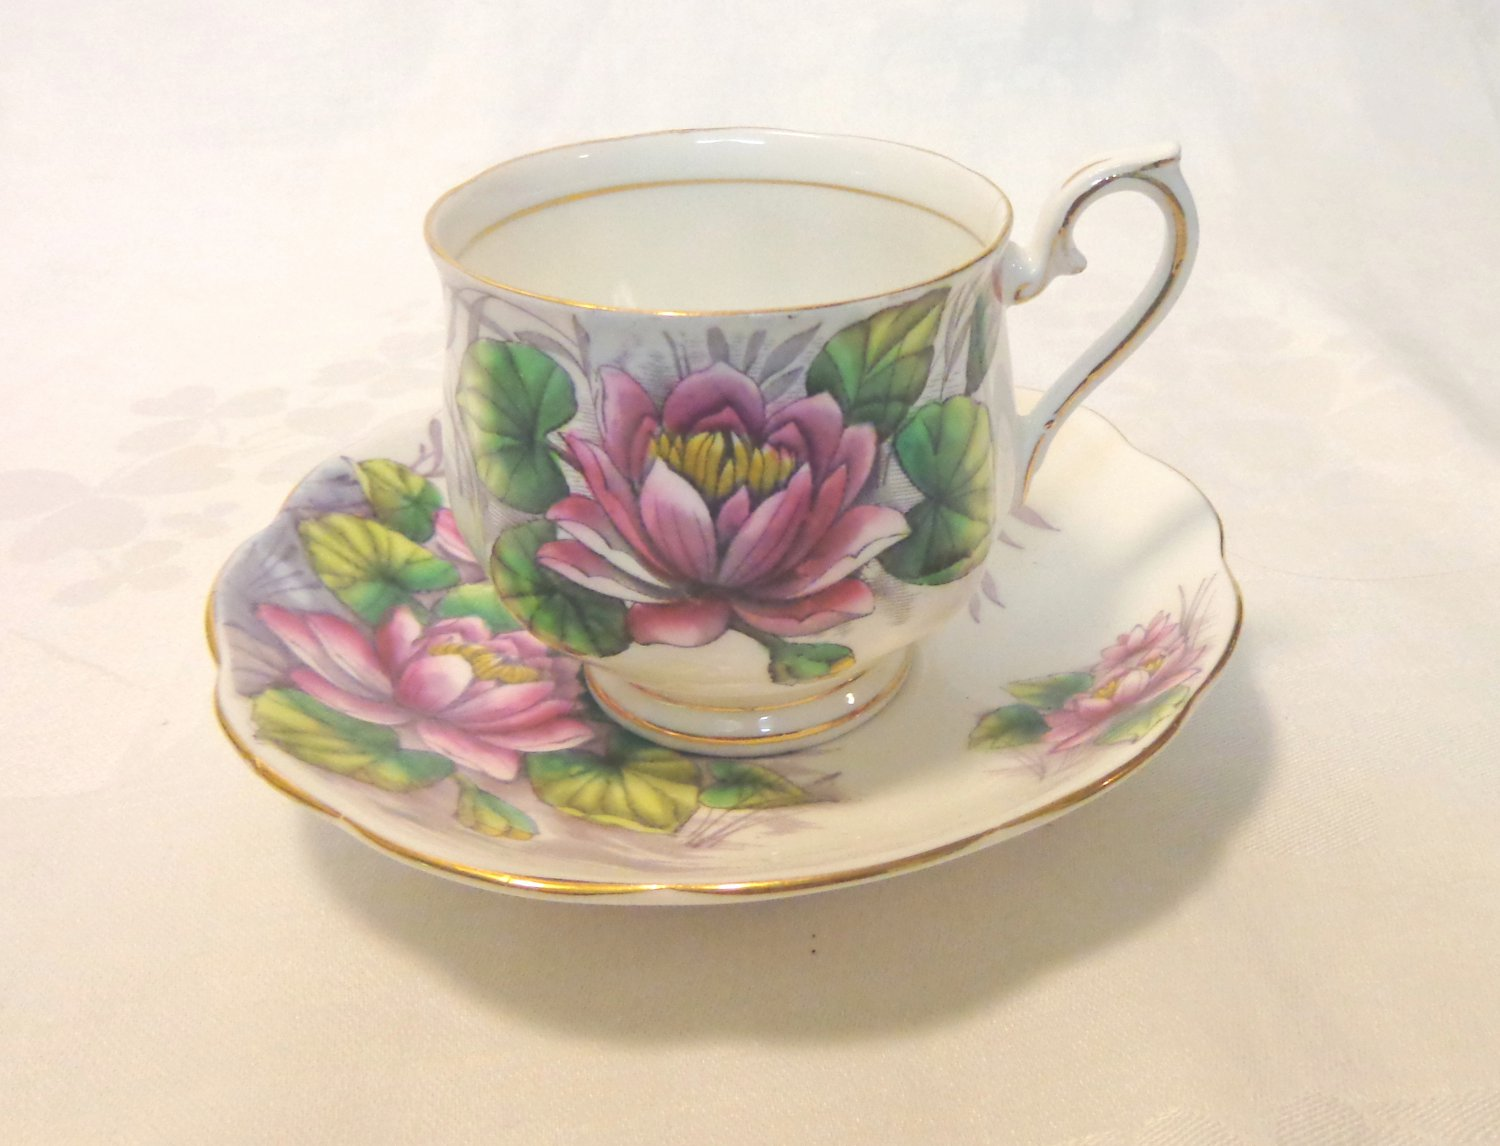 Water lily Royal Albert flower of the month cup/saucer no.7 vintage hc3380